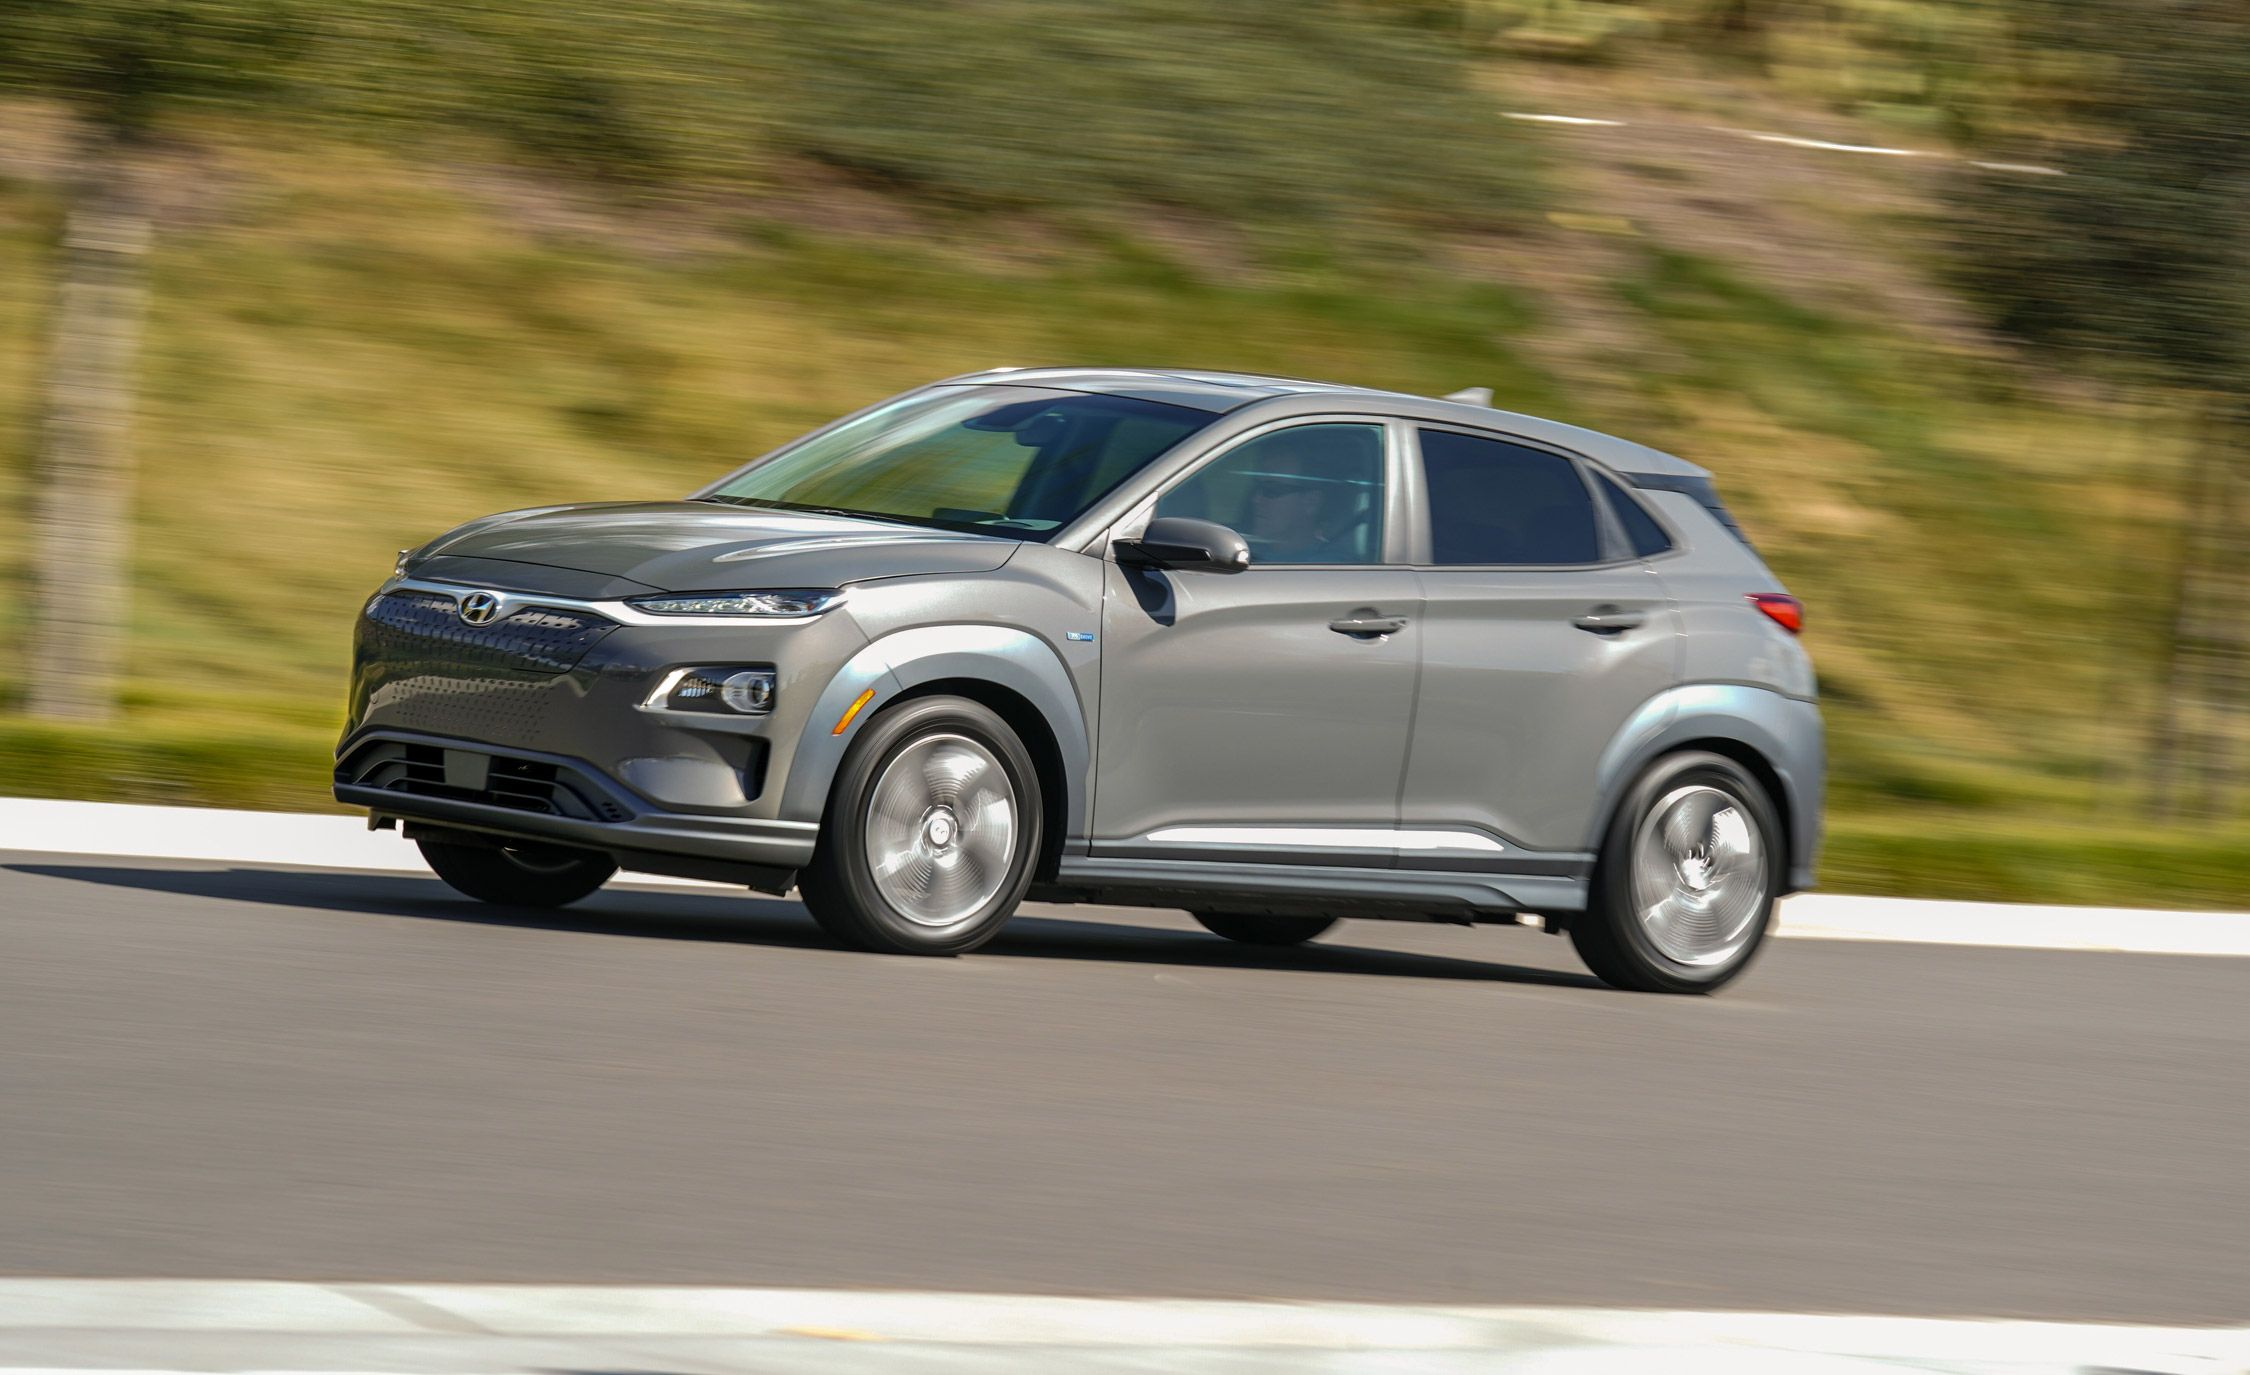 2019 Hyundai Kona Electric Reviews Price Photos And Specs Car Driver